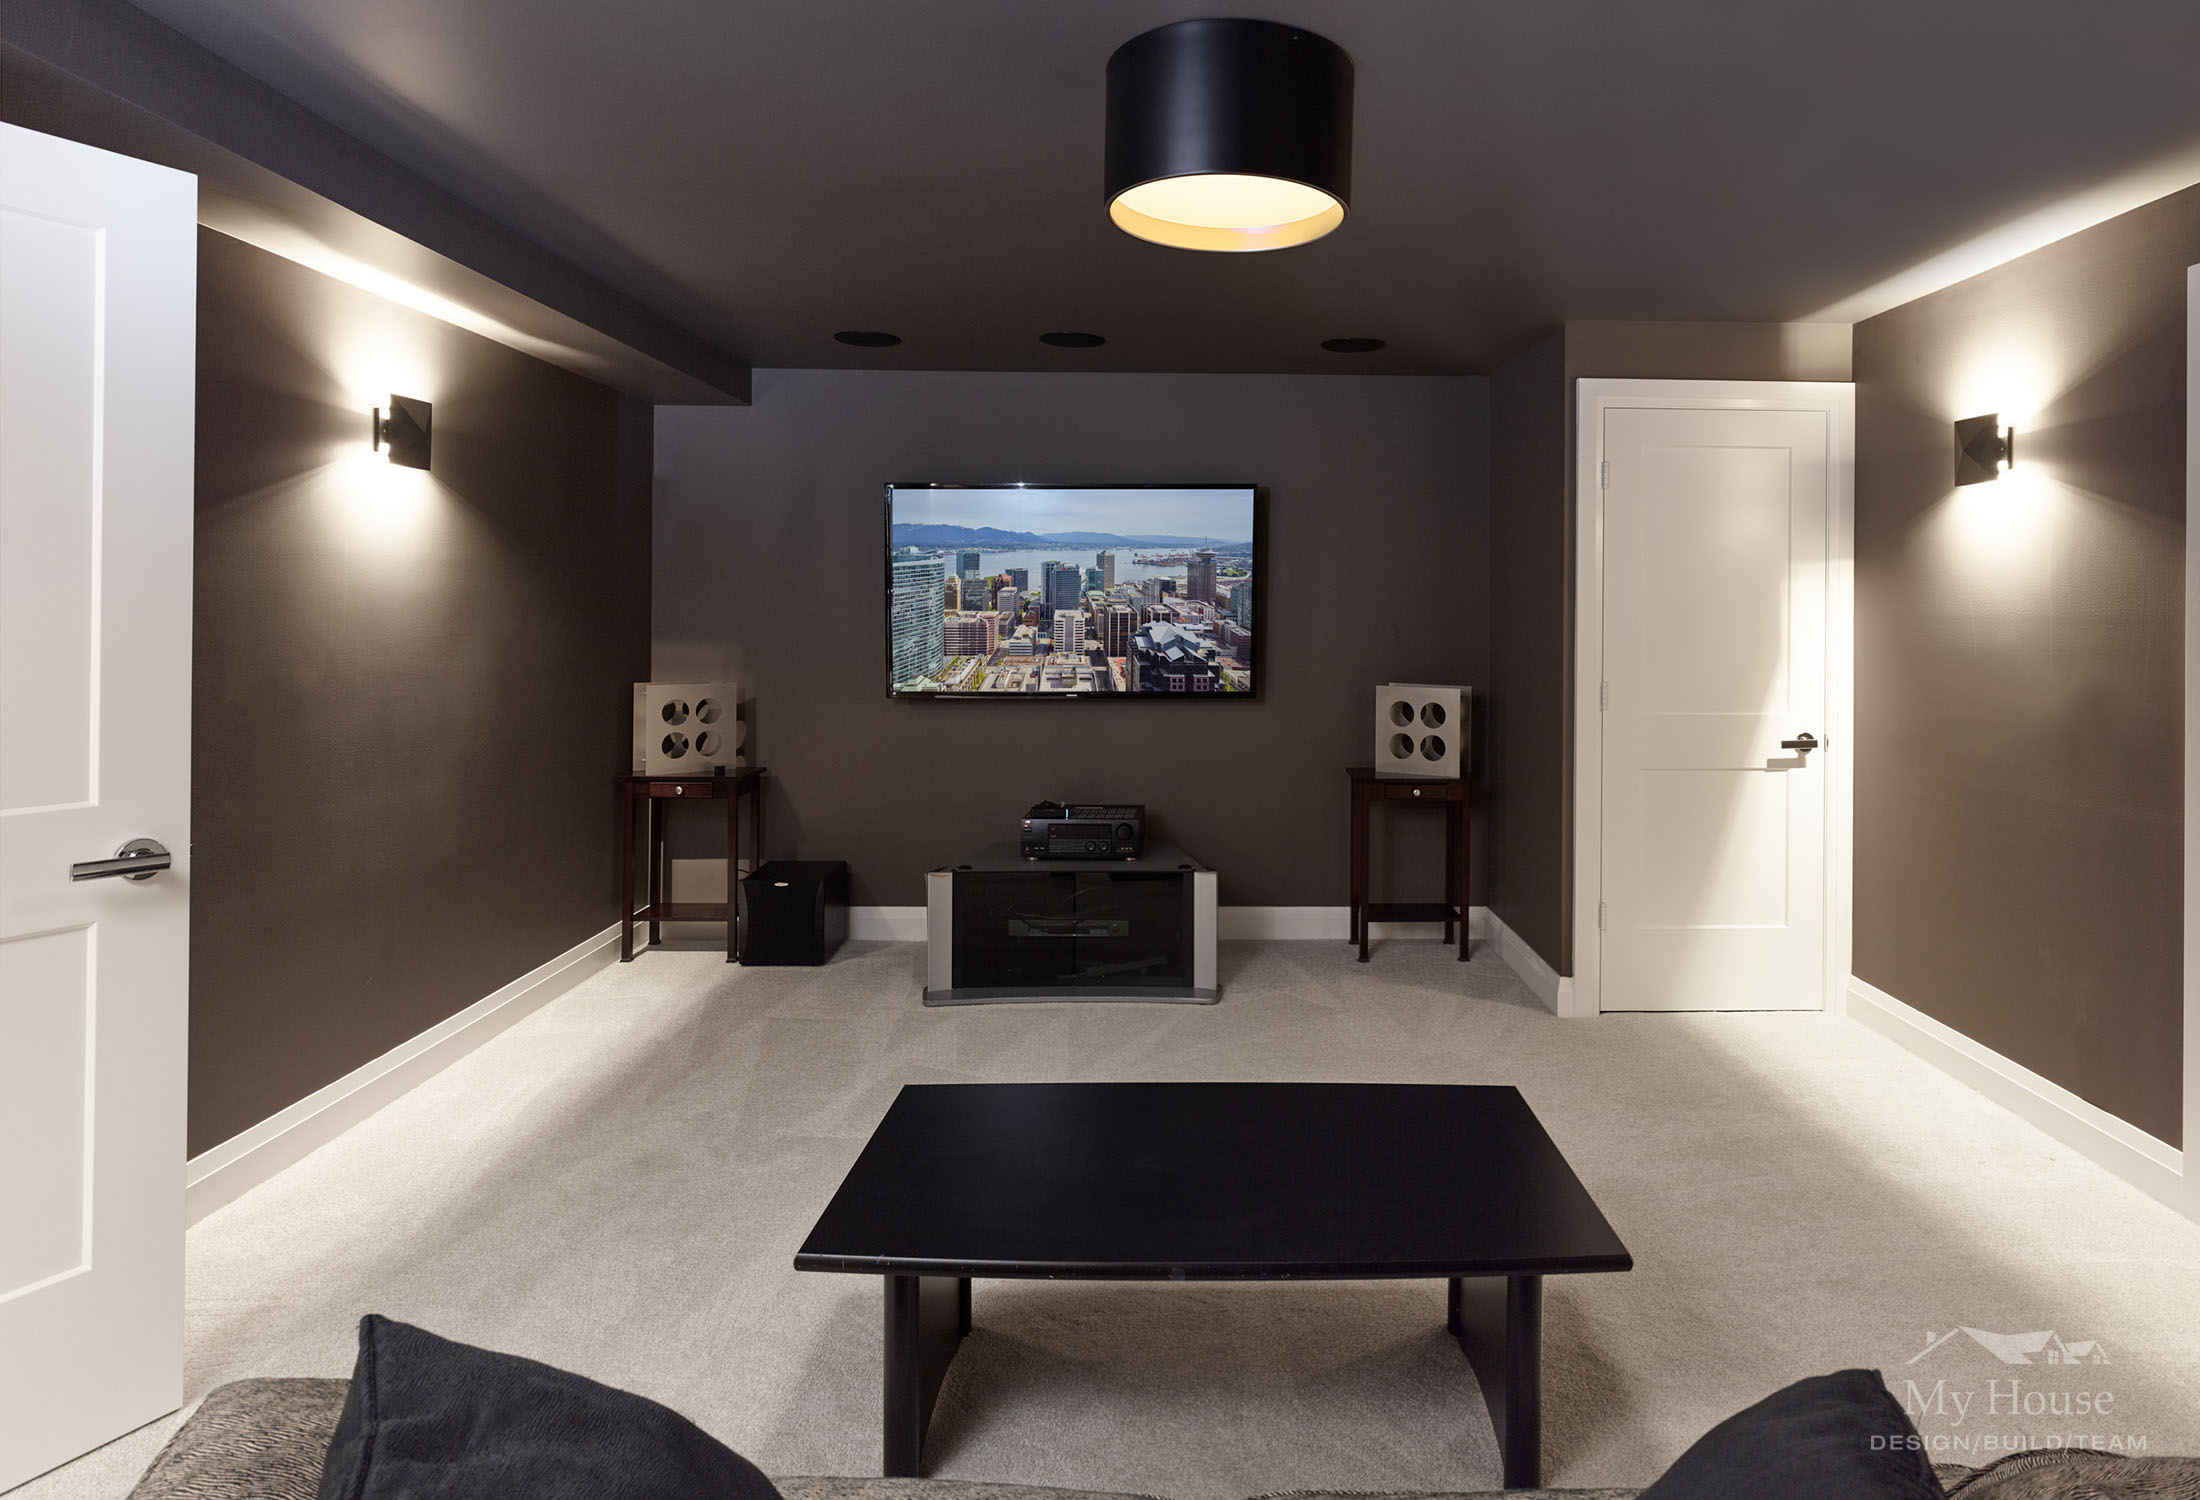 Home Theatre Renovation